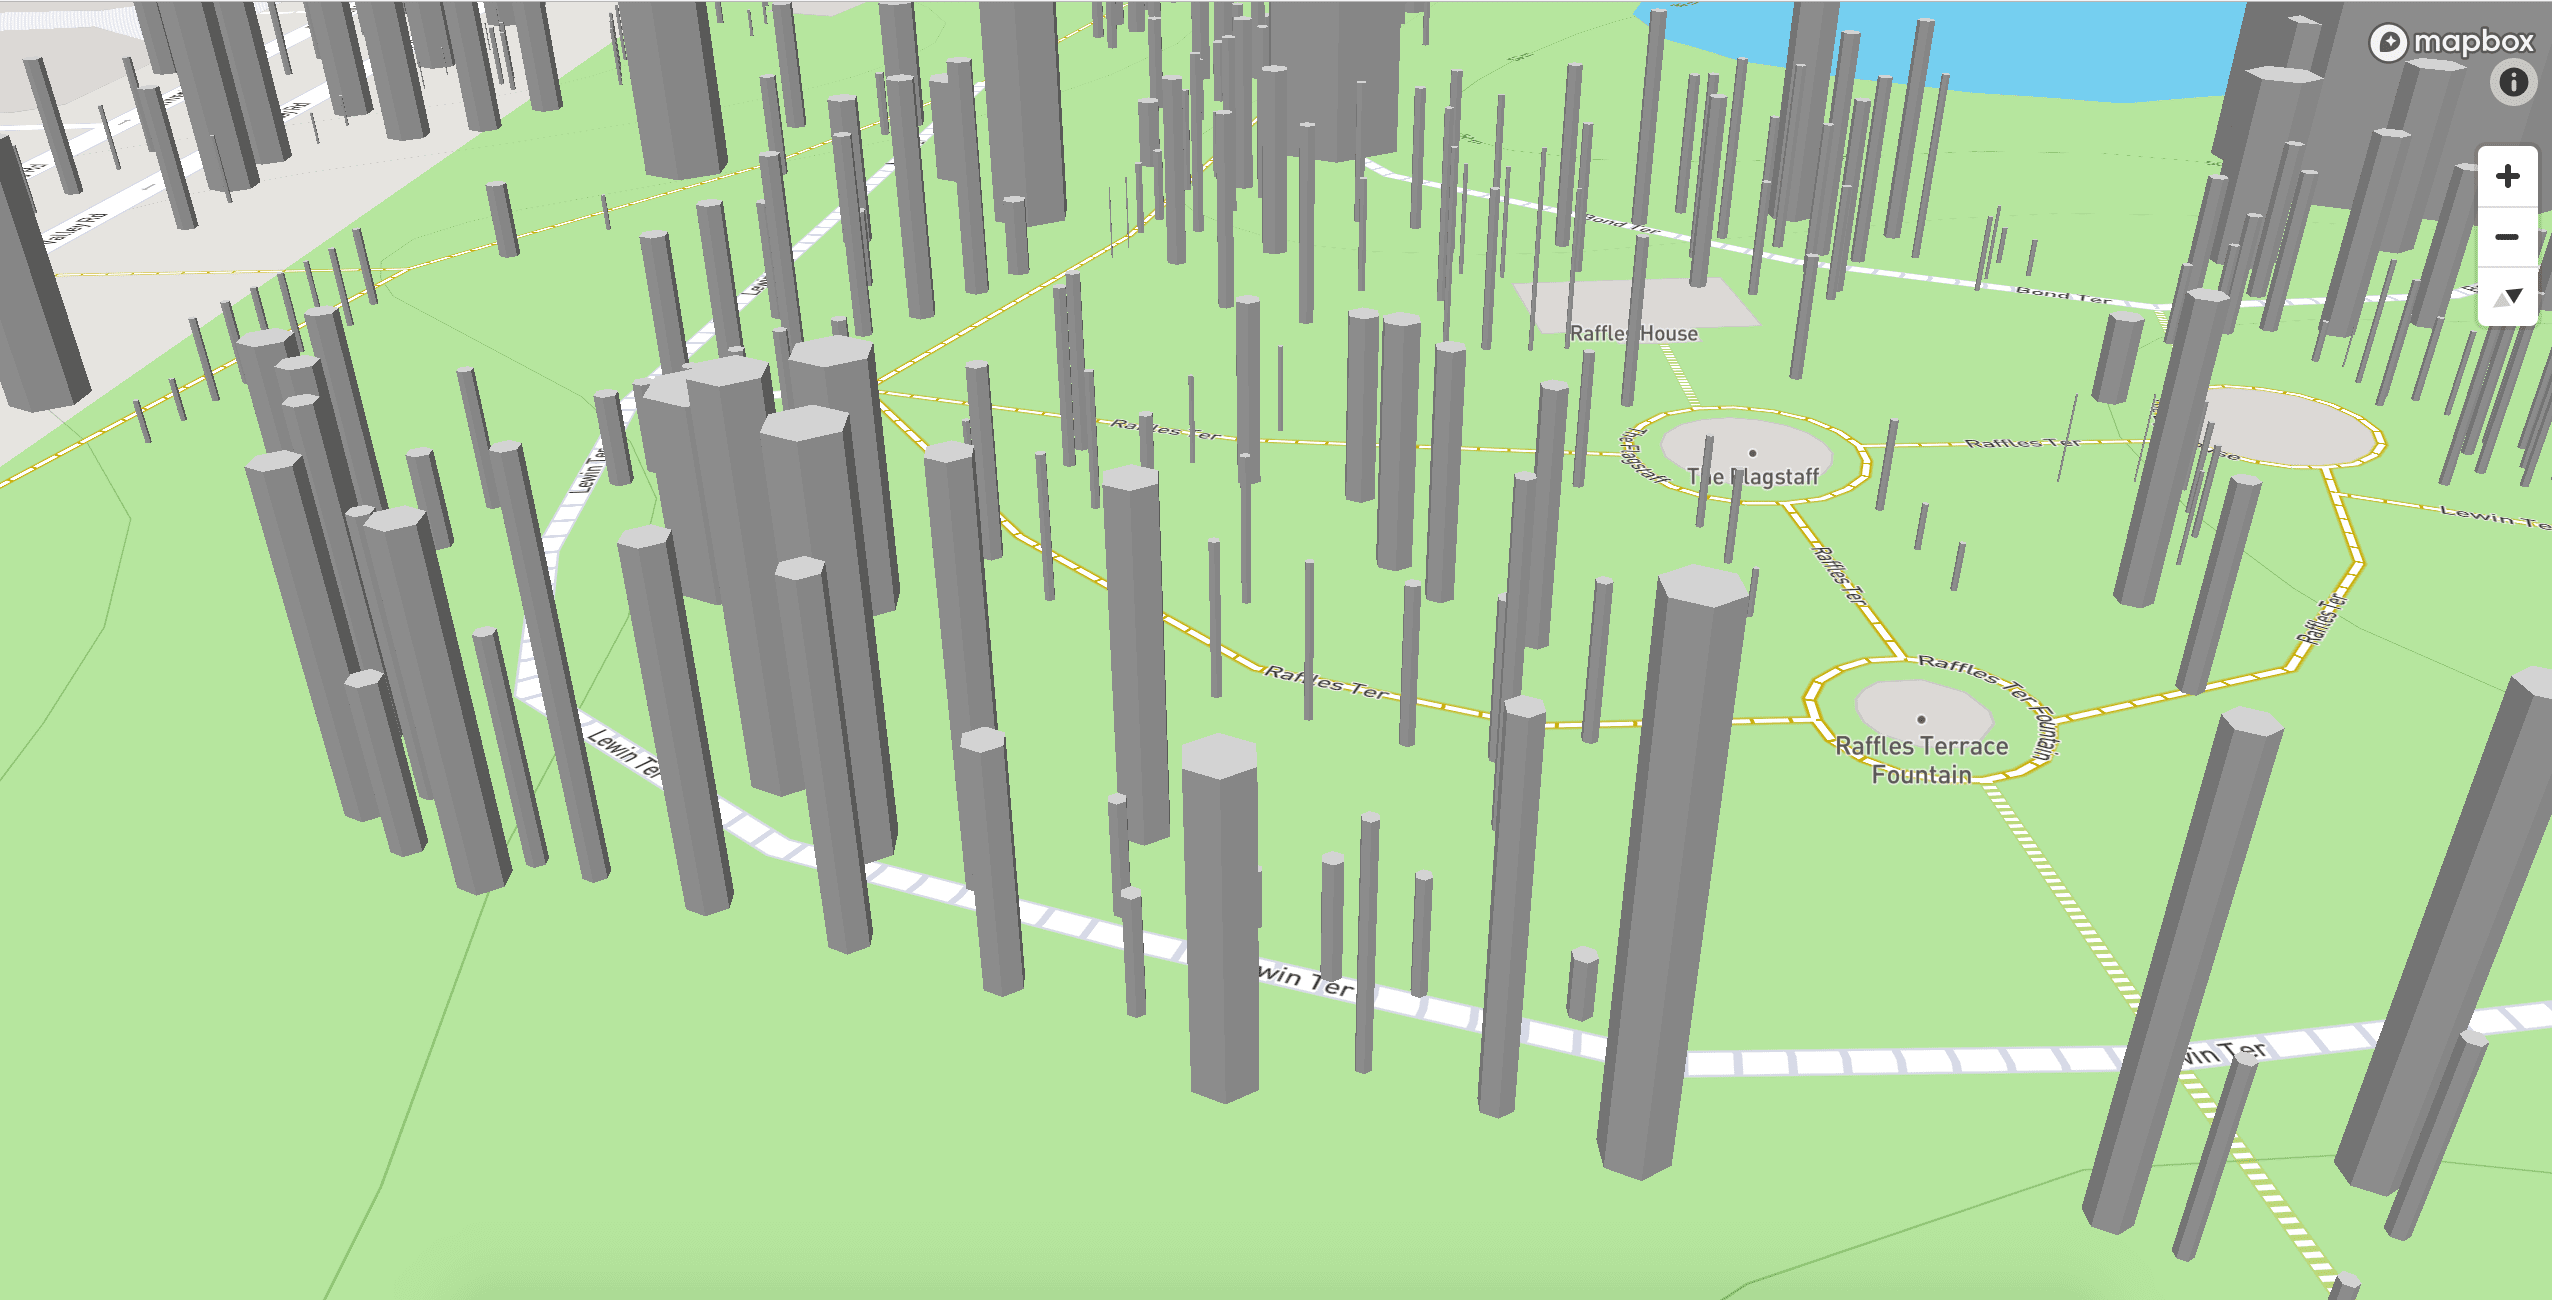 3D trees rendered based on girth and height on a map in Singapore, zoomed in close-up